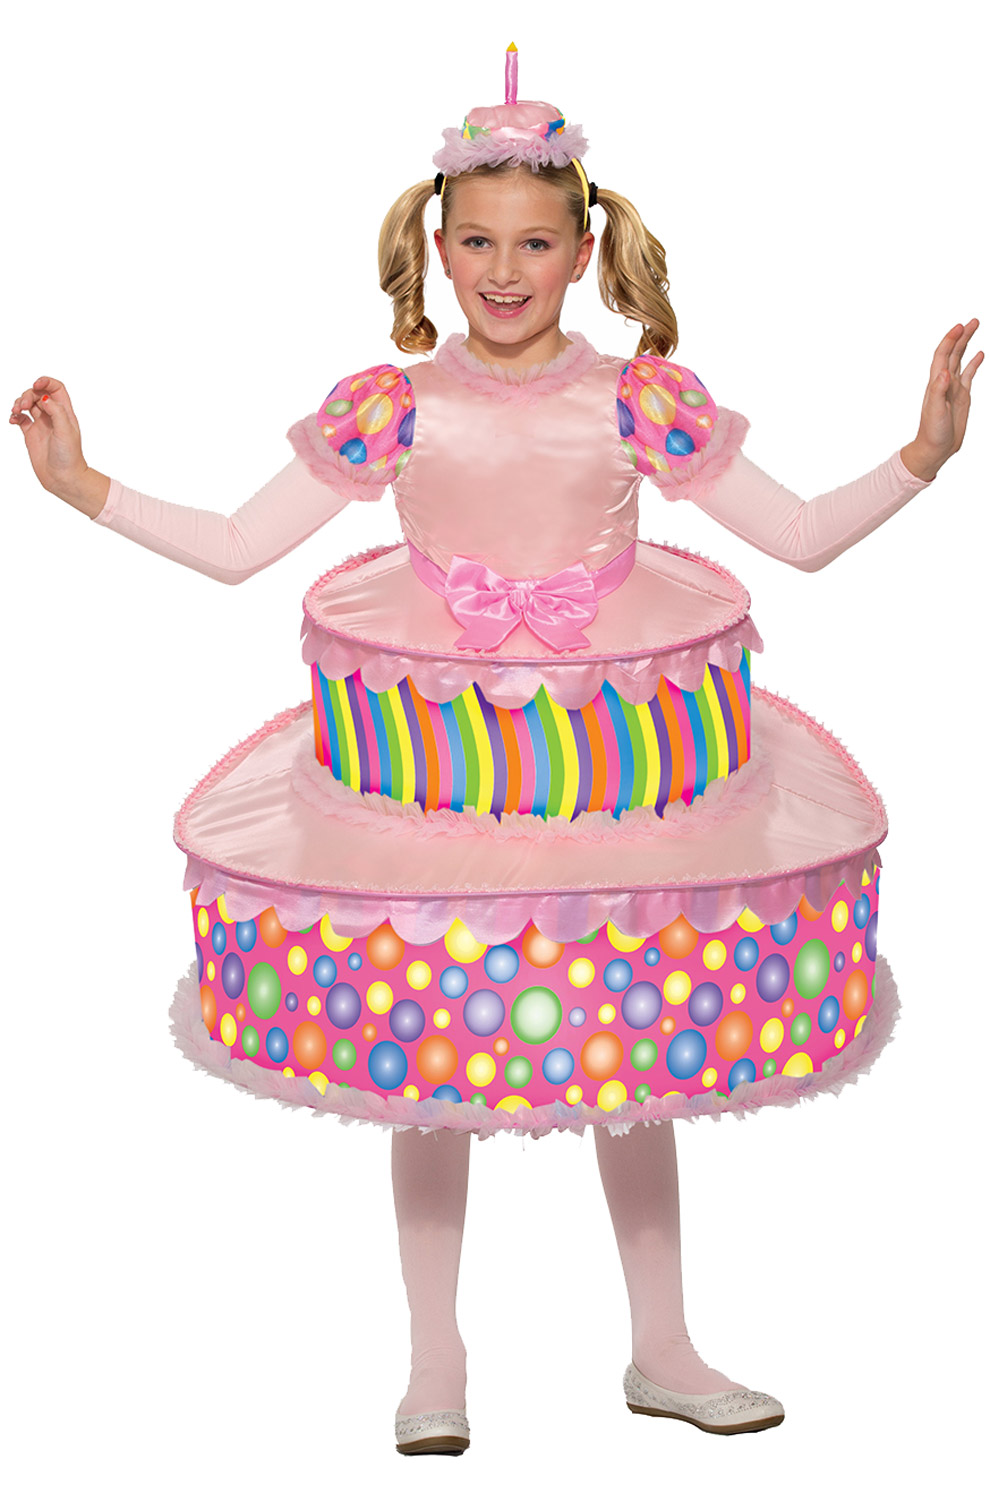 Birthday Cake Costume For Adults